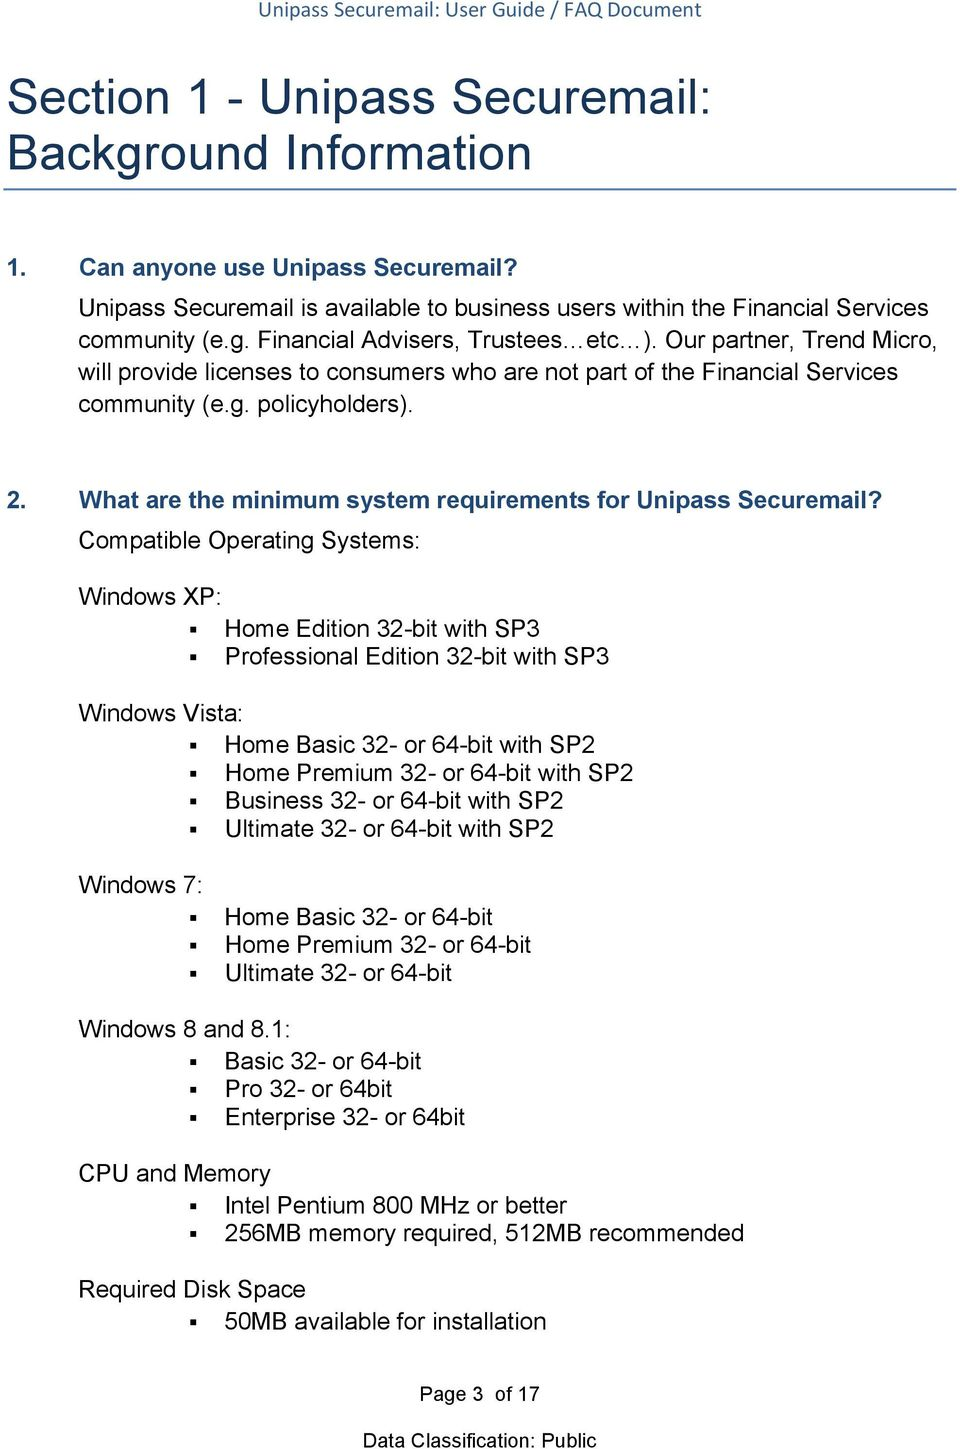 What are the minimum system requirements for Unipass Securemail?